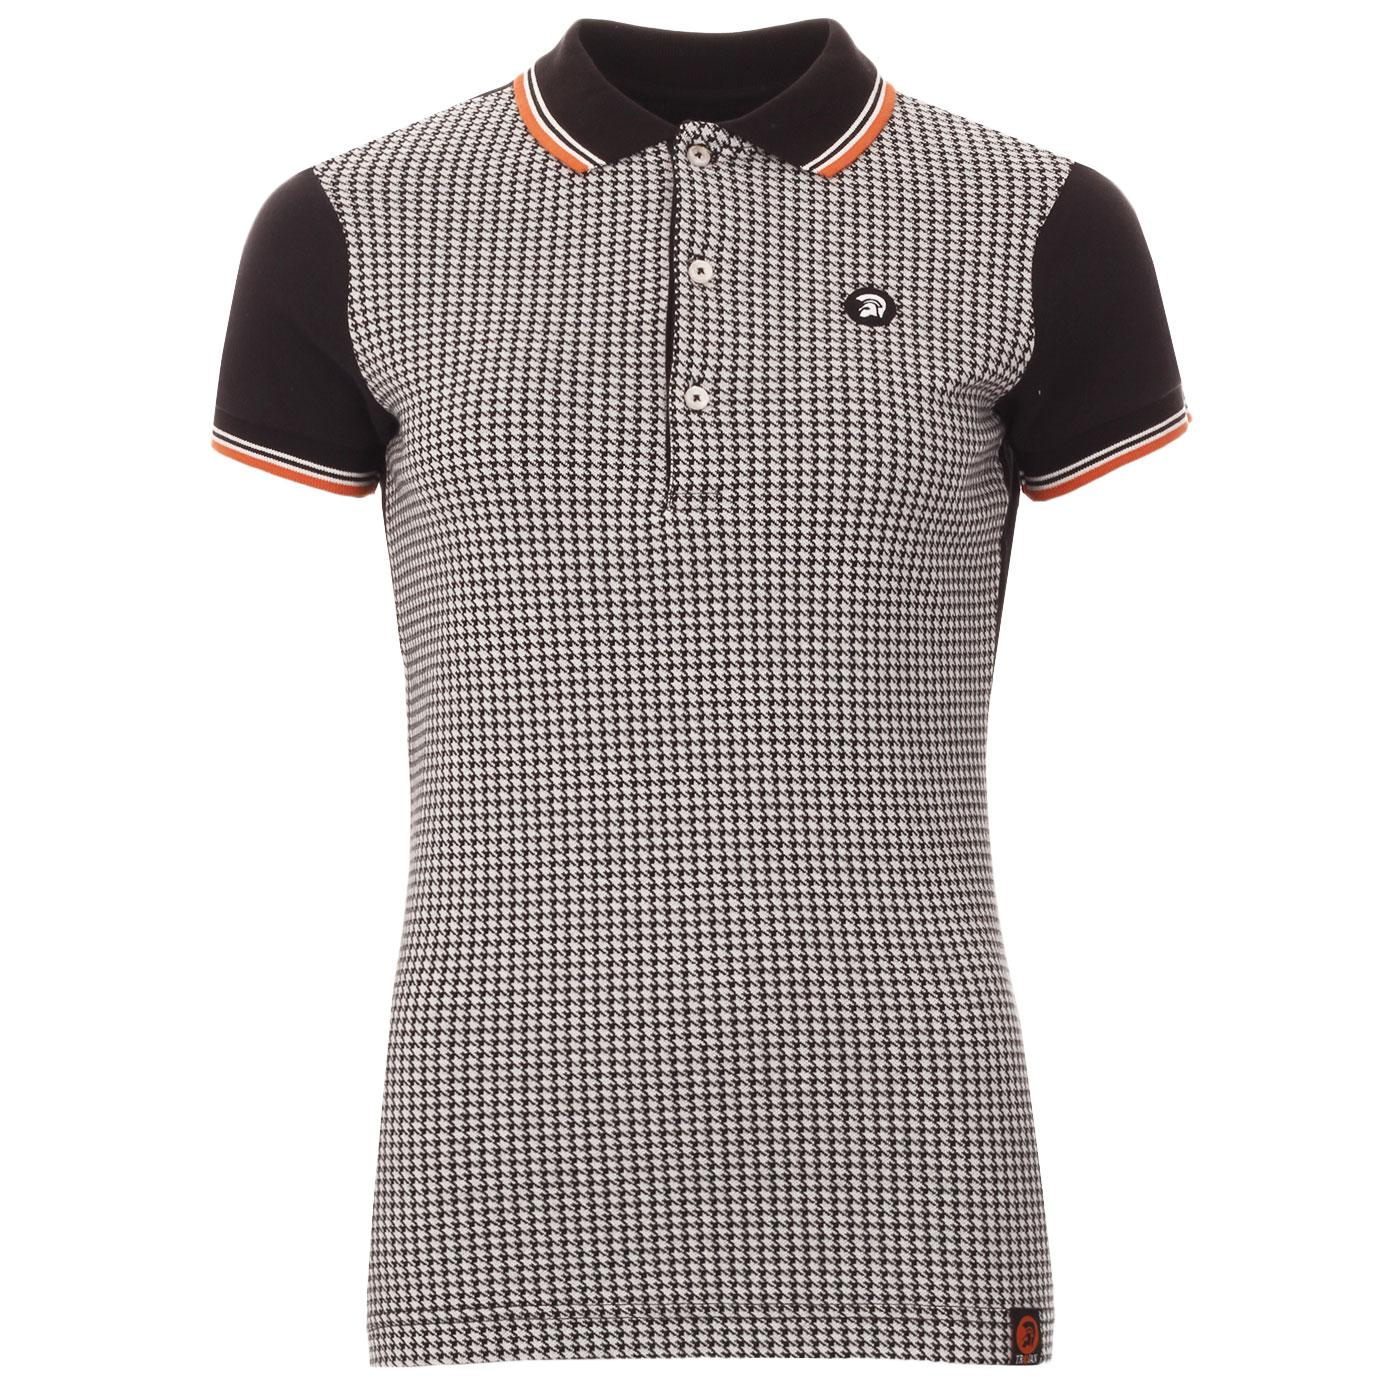 TROJAN RECORDS Women's Mod Houndstooth Polo Top